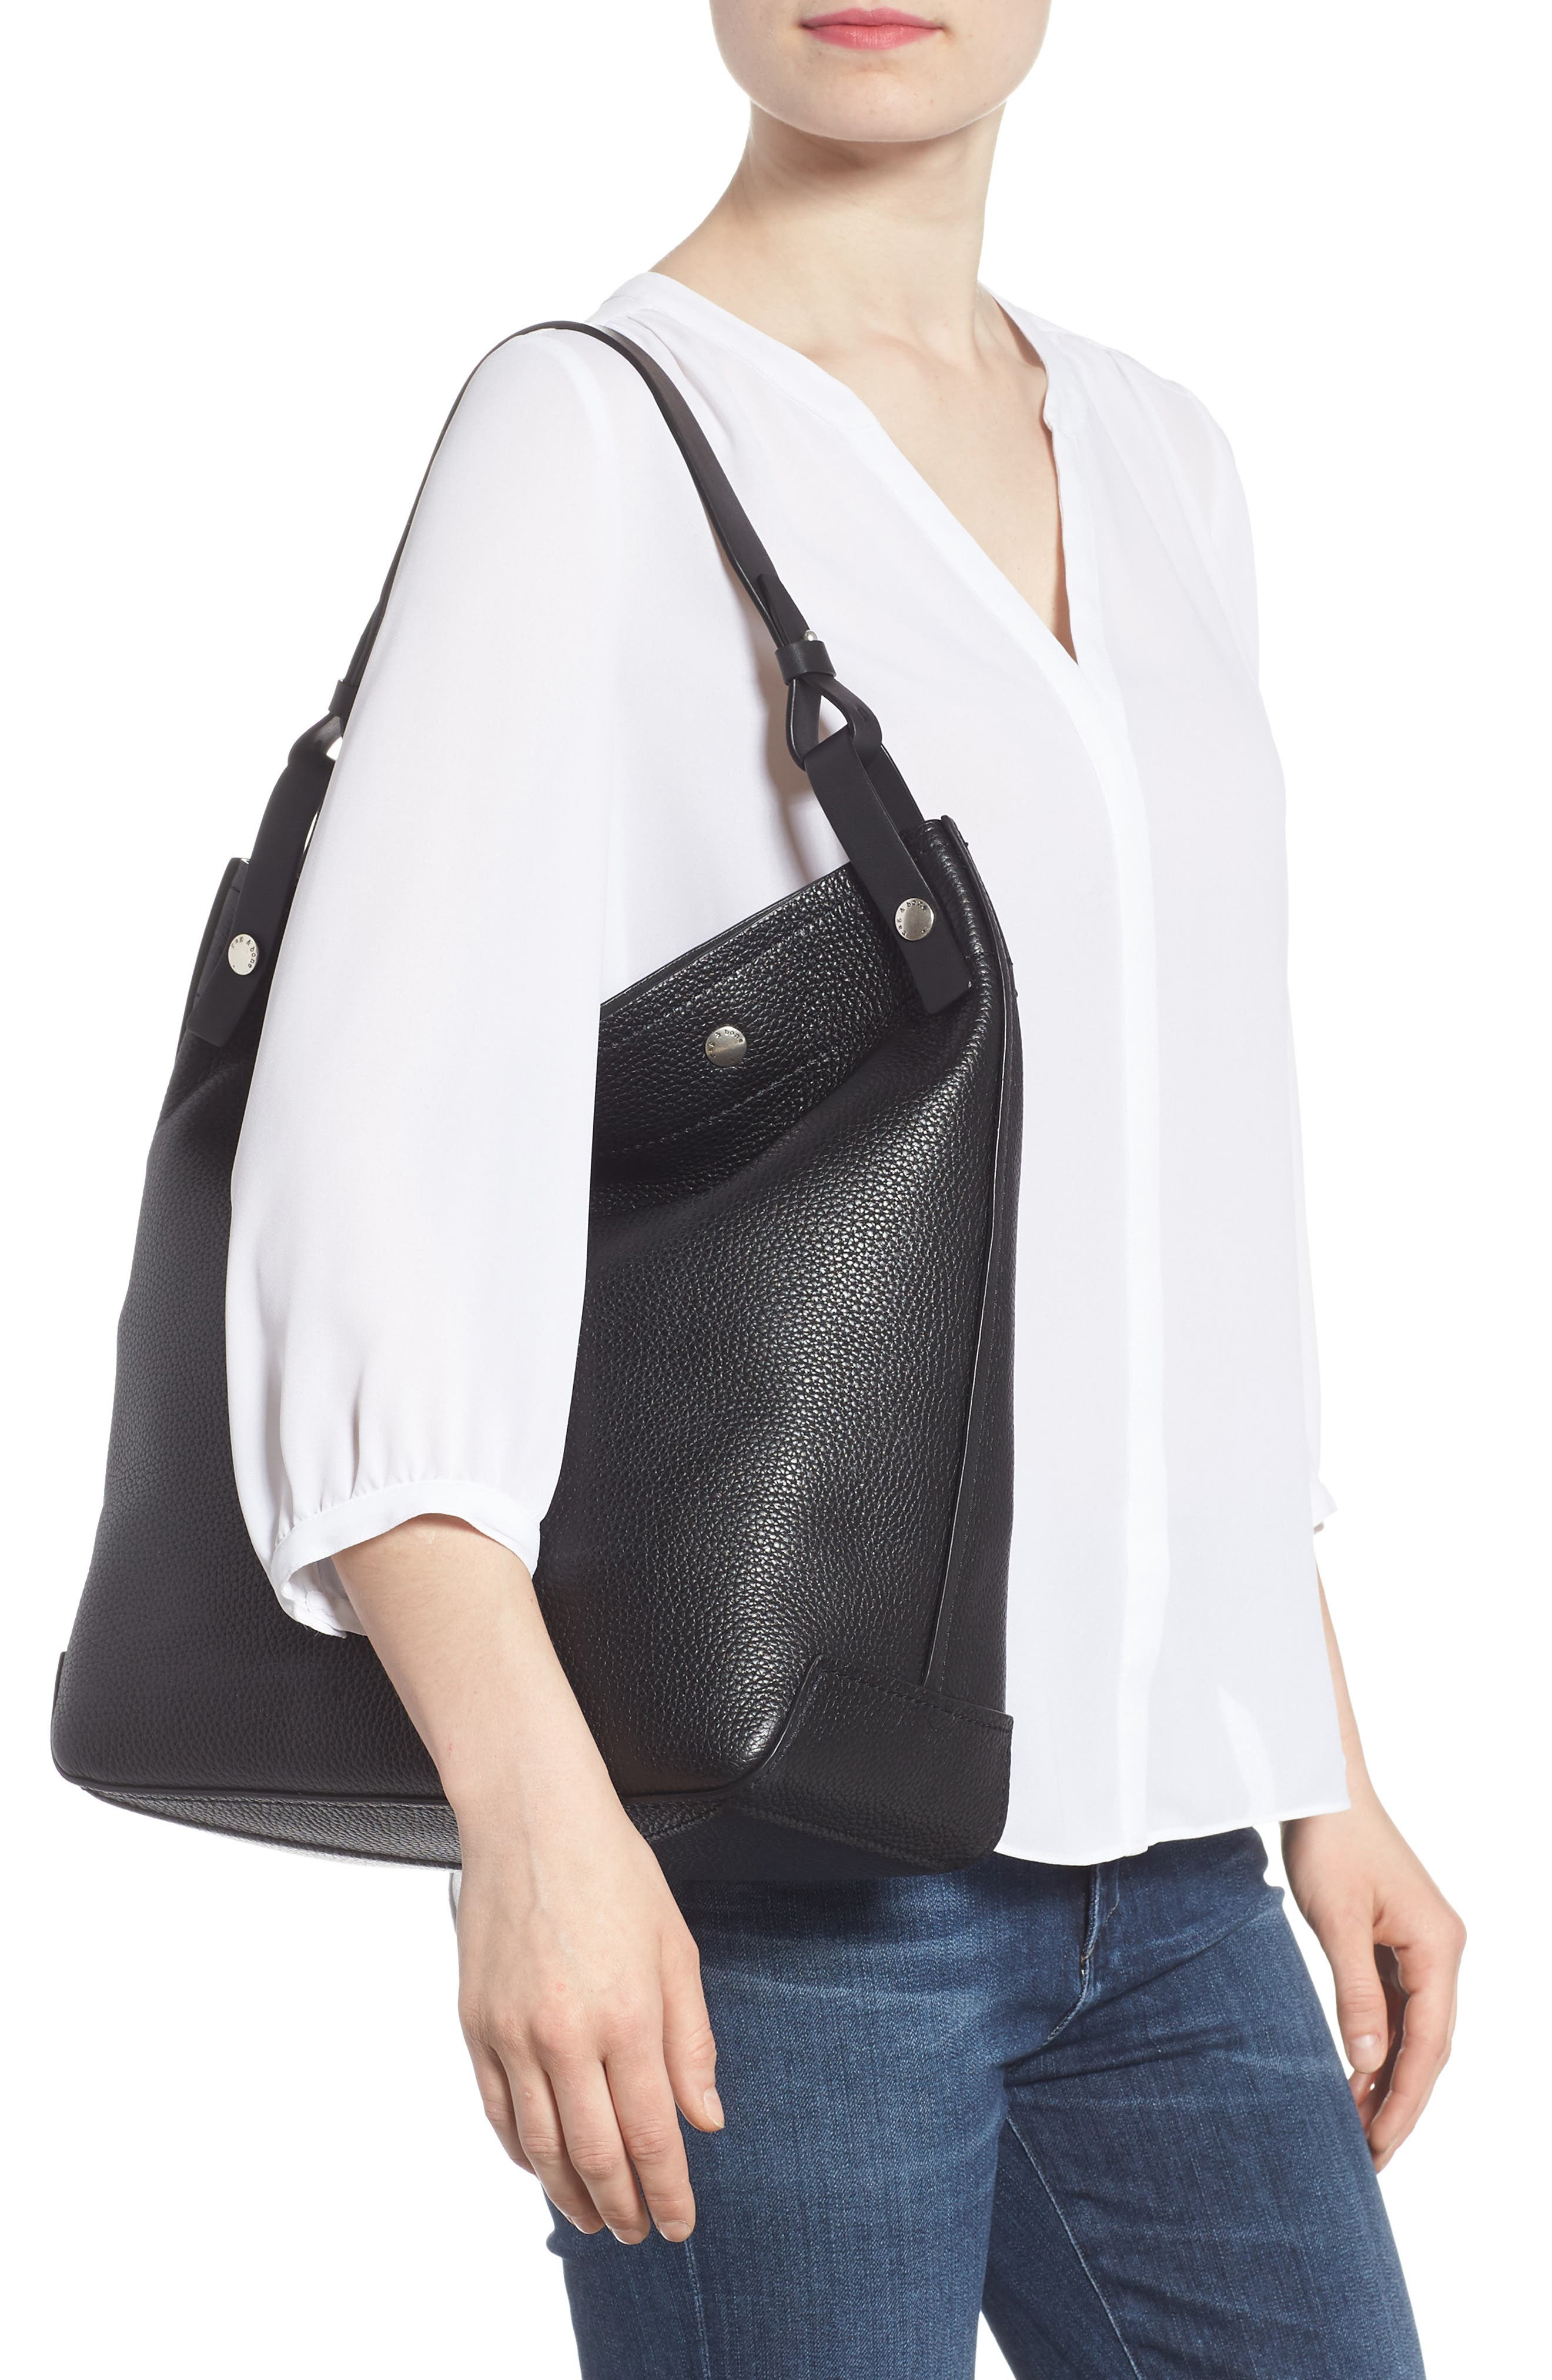 Compass Snap Hobo,                             Alternate thumbnail 2, color,                             BLACK